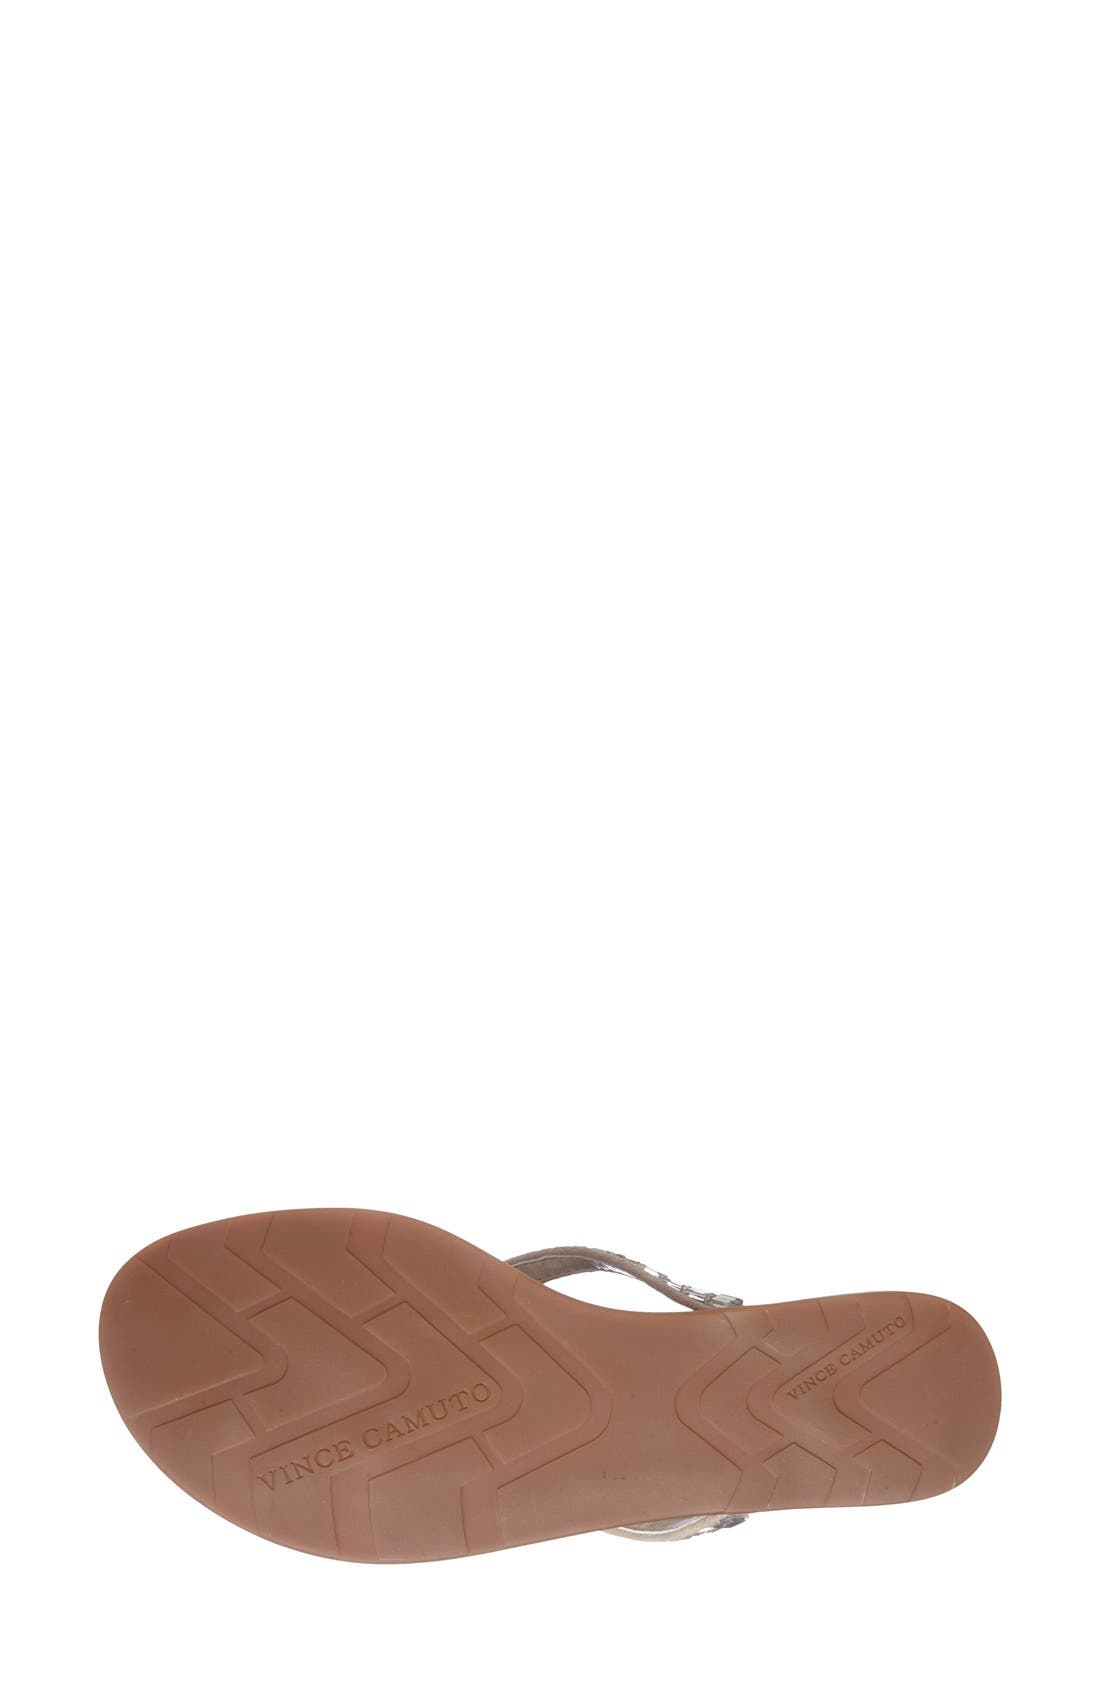 Alternate Image 4  - Vince Camuto 'Ellita' Flat Sandal (Women)